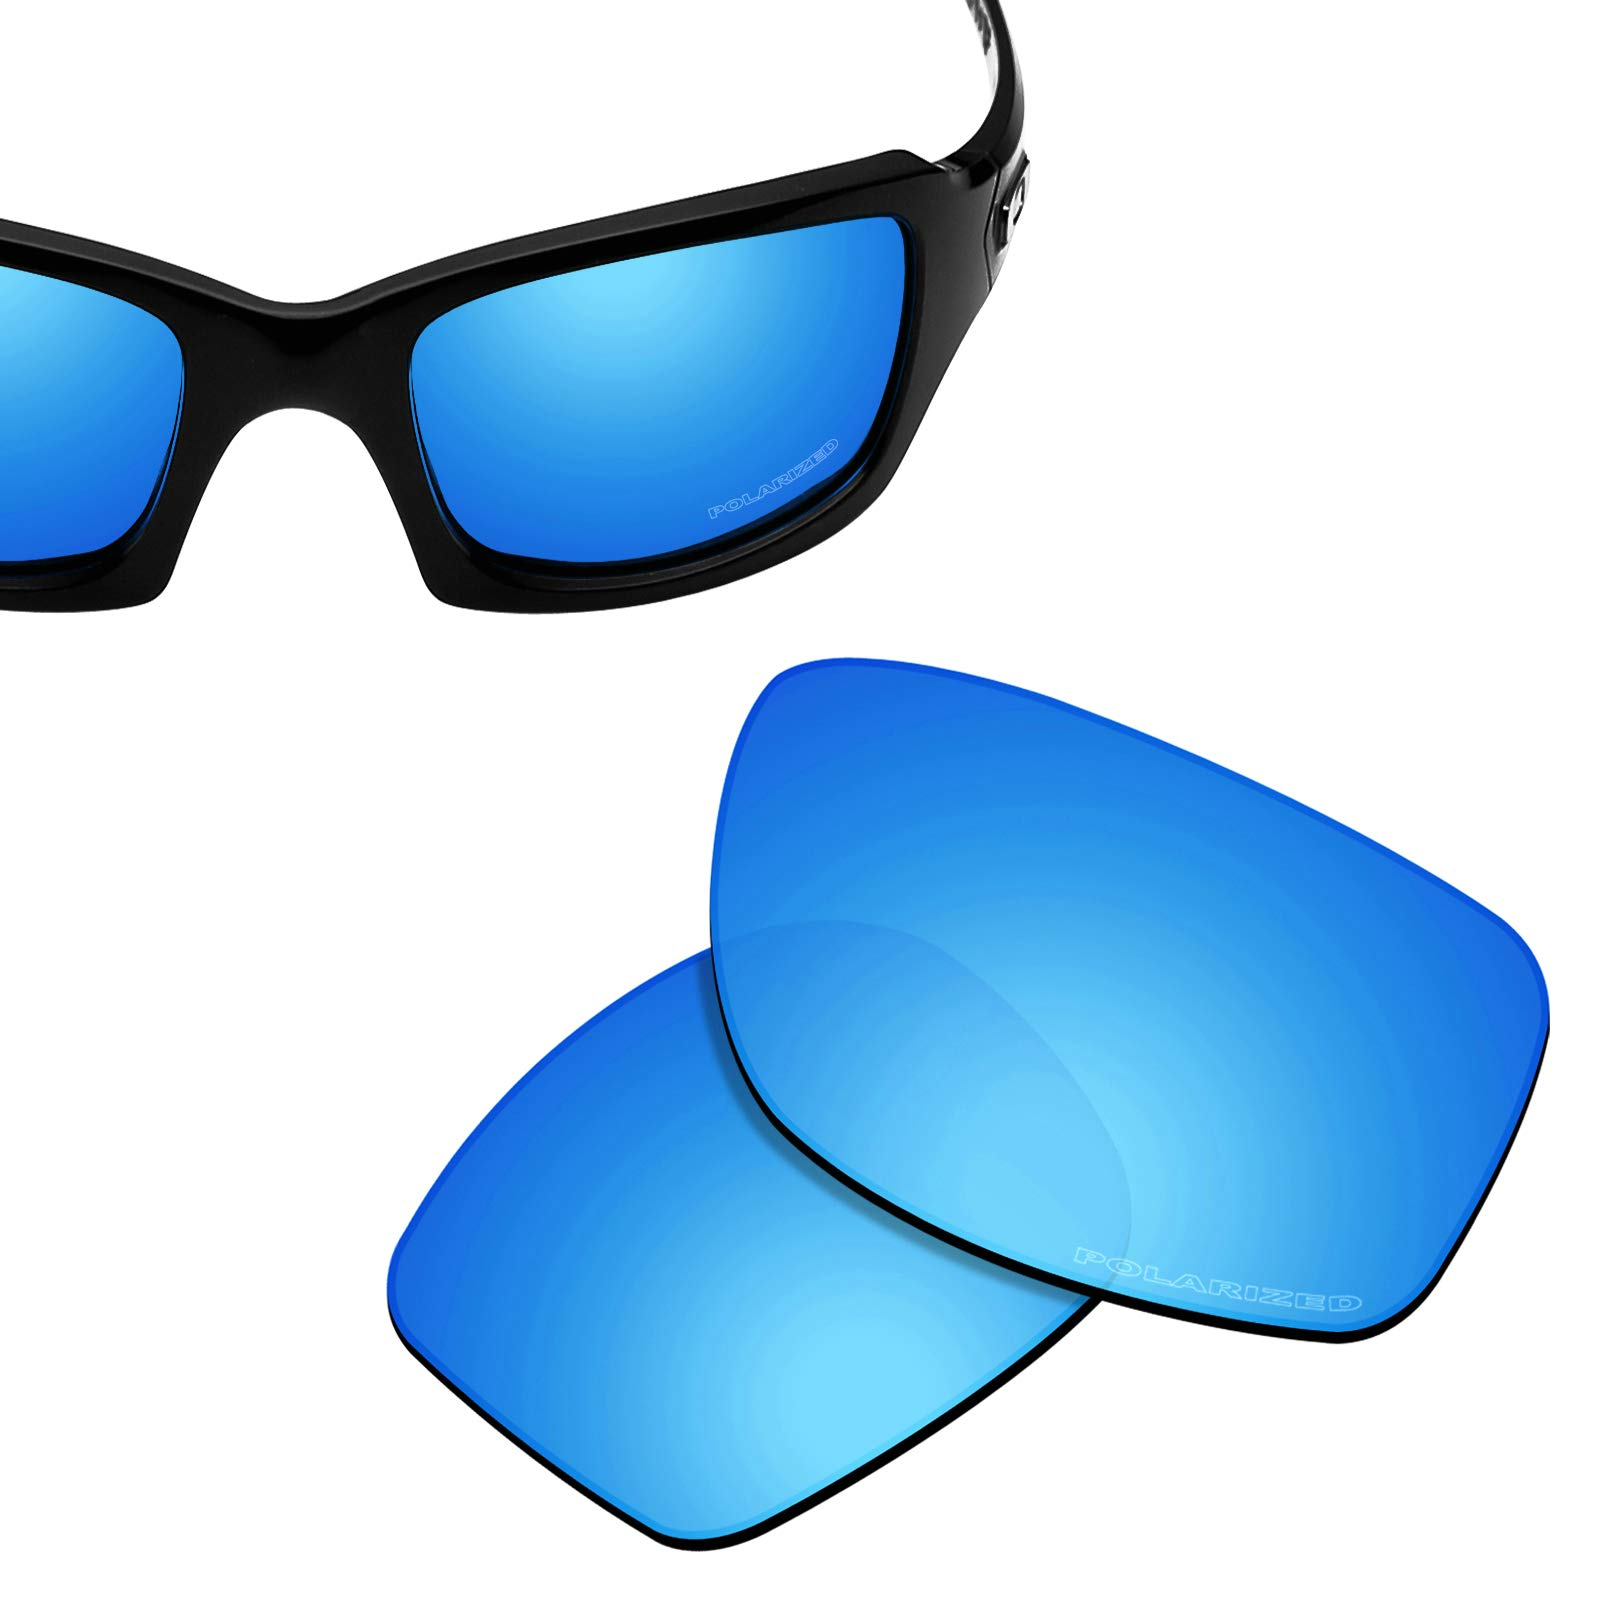 New 1.8mm Thick UV401 Replacement Lenses for Oakley Fives Squared - Options